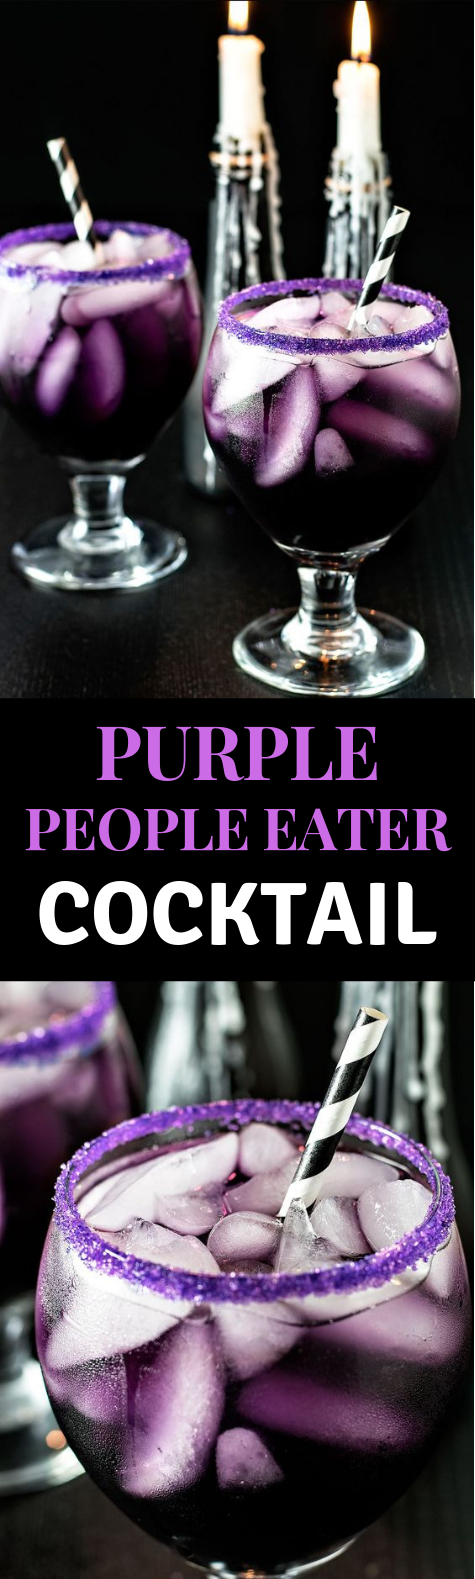 PURPLE PEOPLE EATER COCKTAIL #Cocktail #Drink